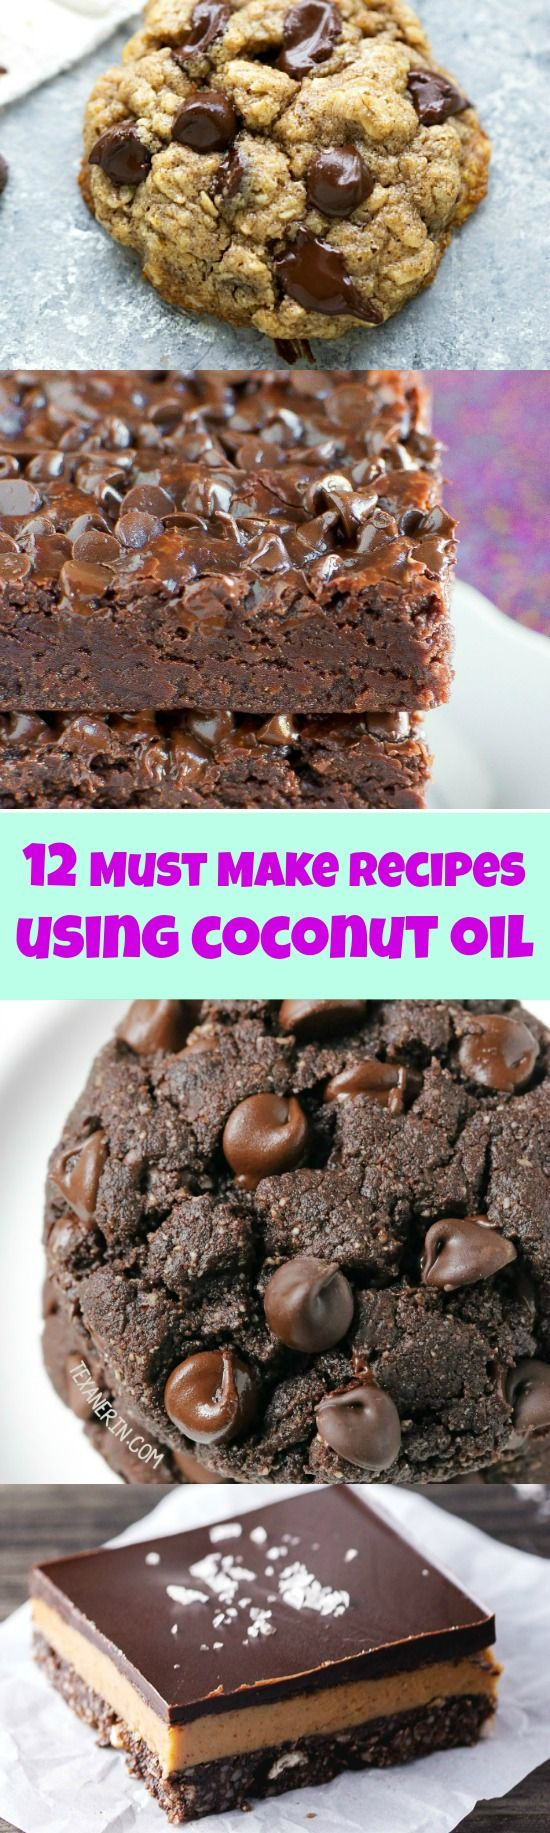 Baking with Coconut Oil - 12 Must Make Recipes! These are amazing! The brownies are killer!!